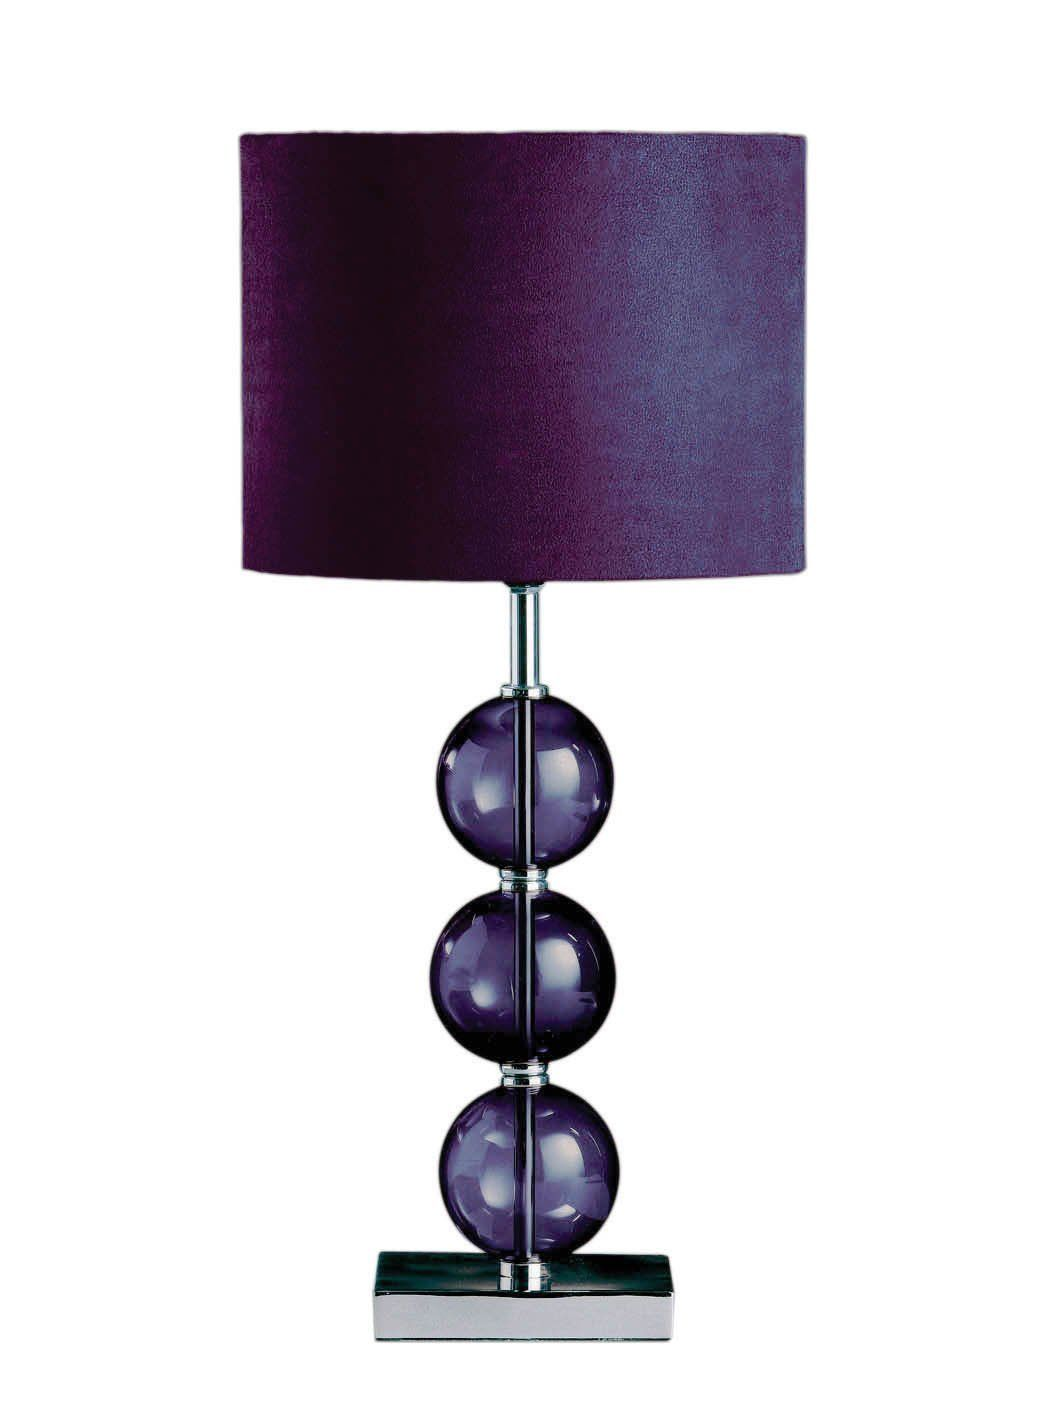 Purple Table Lamp Classy Premier Housewares Mistro Purple Table Lamp With 3 Glass Balls Inspiration Design